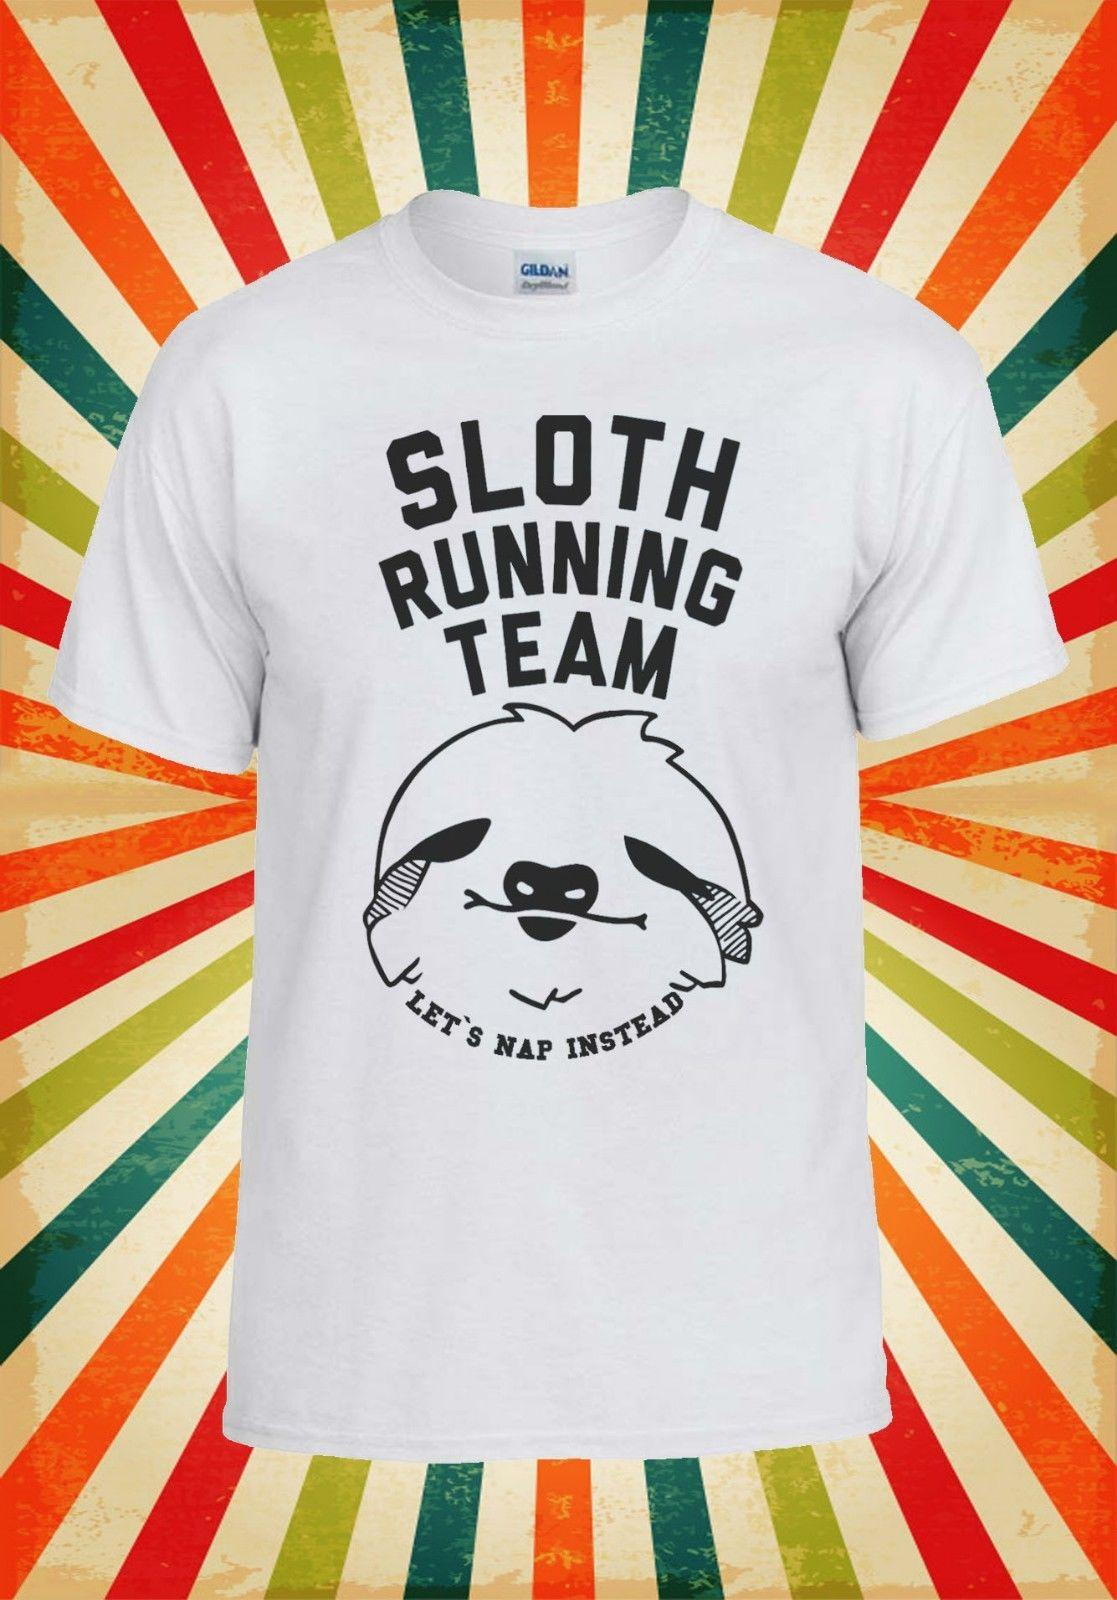 d8e3add5d Sloth Running Team Novelty Cool Men Women Vest Tank Top Unisex T Shirt 1125  Funny Gift Short Tops Round Neck Tees T Shirt Shirt Awesome T Shirts For  Guys ...